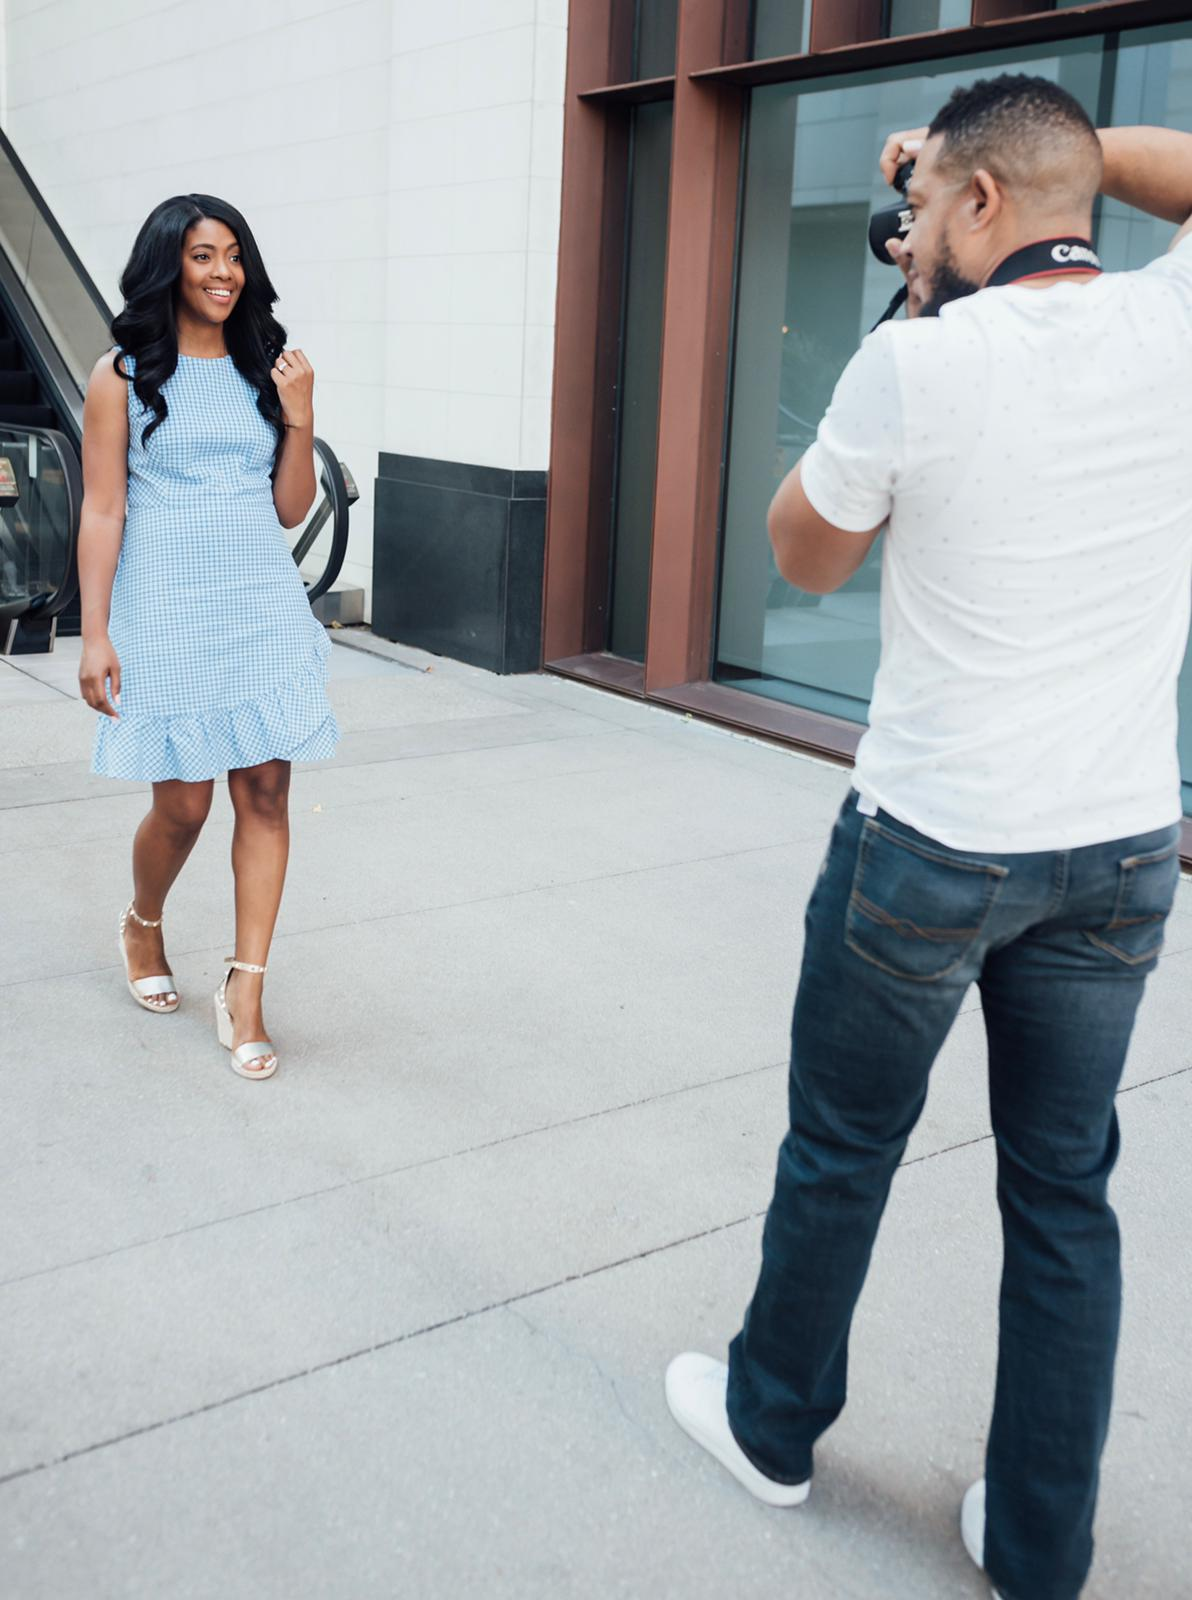 How to find a photographer for your fashion blog?